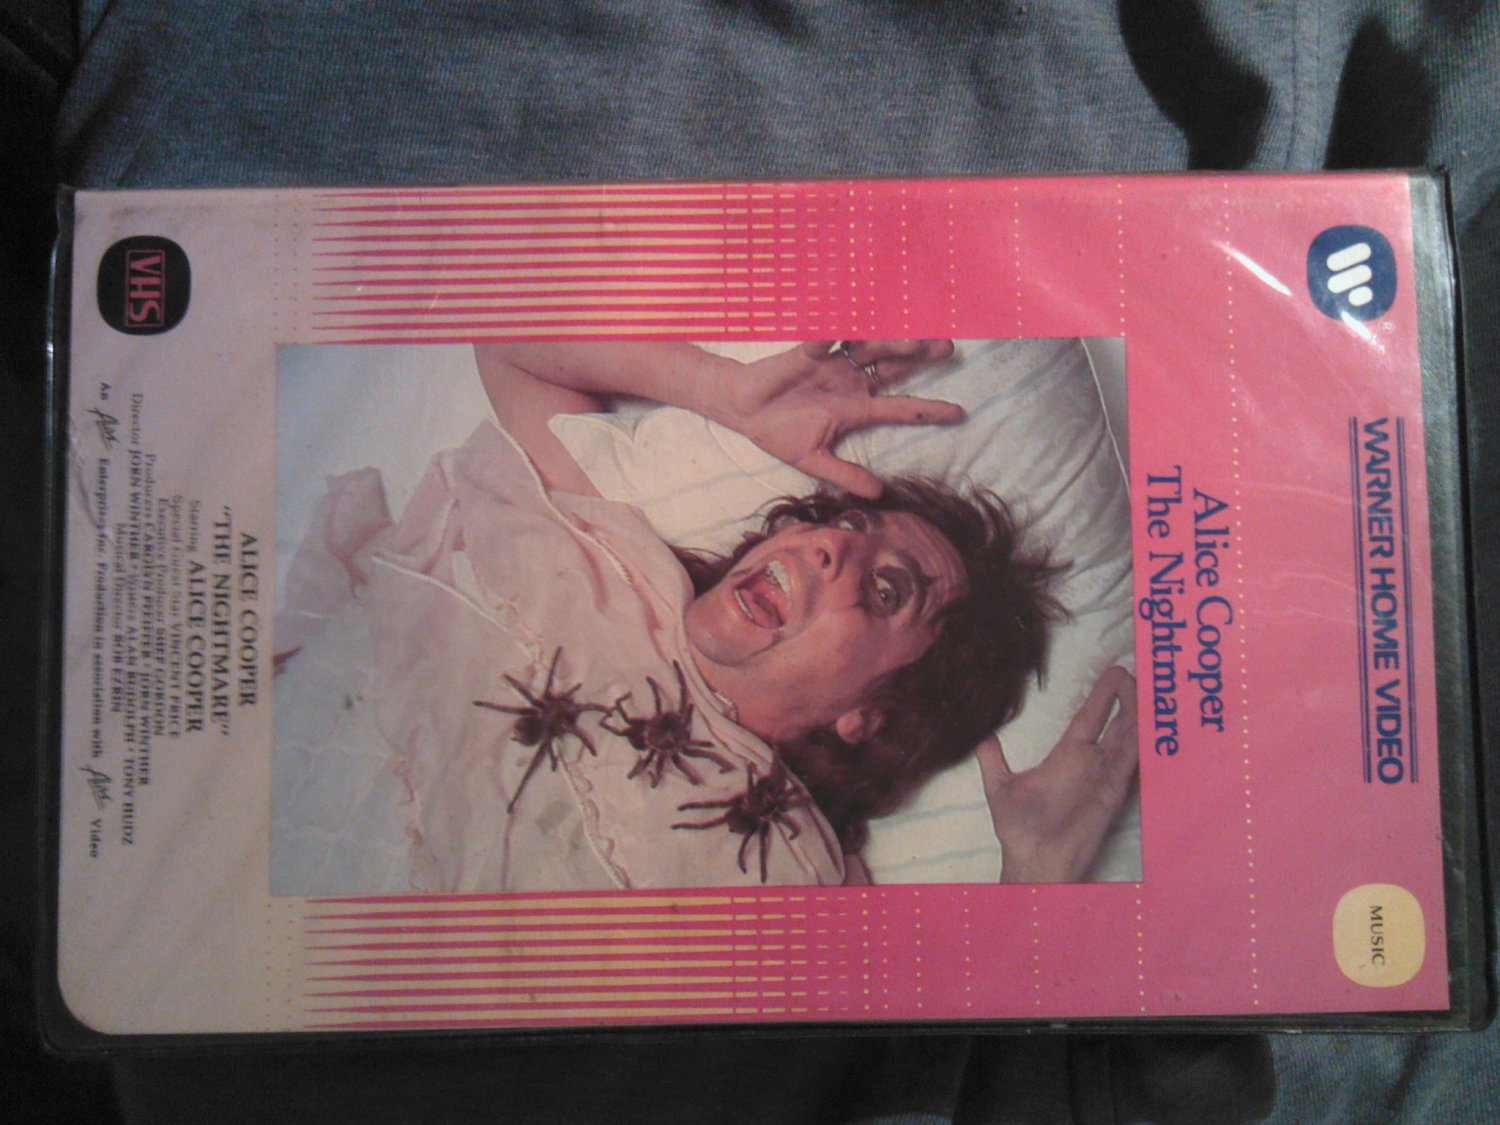 VHS ALICE COOPER The Nightmare vincent price VINTAGE OOP